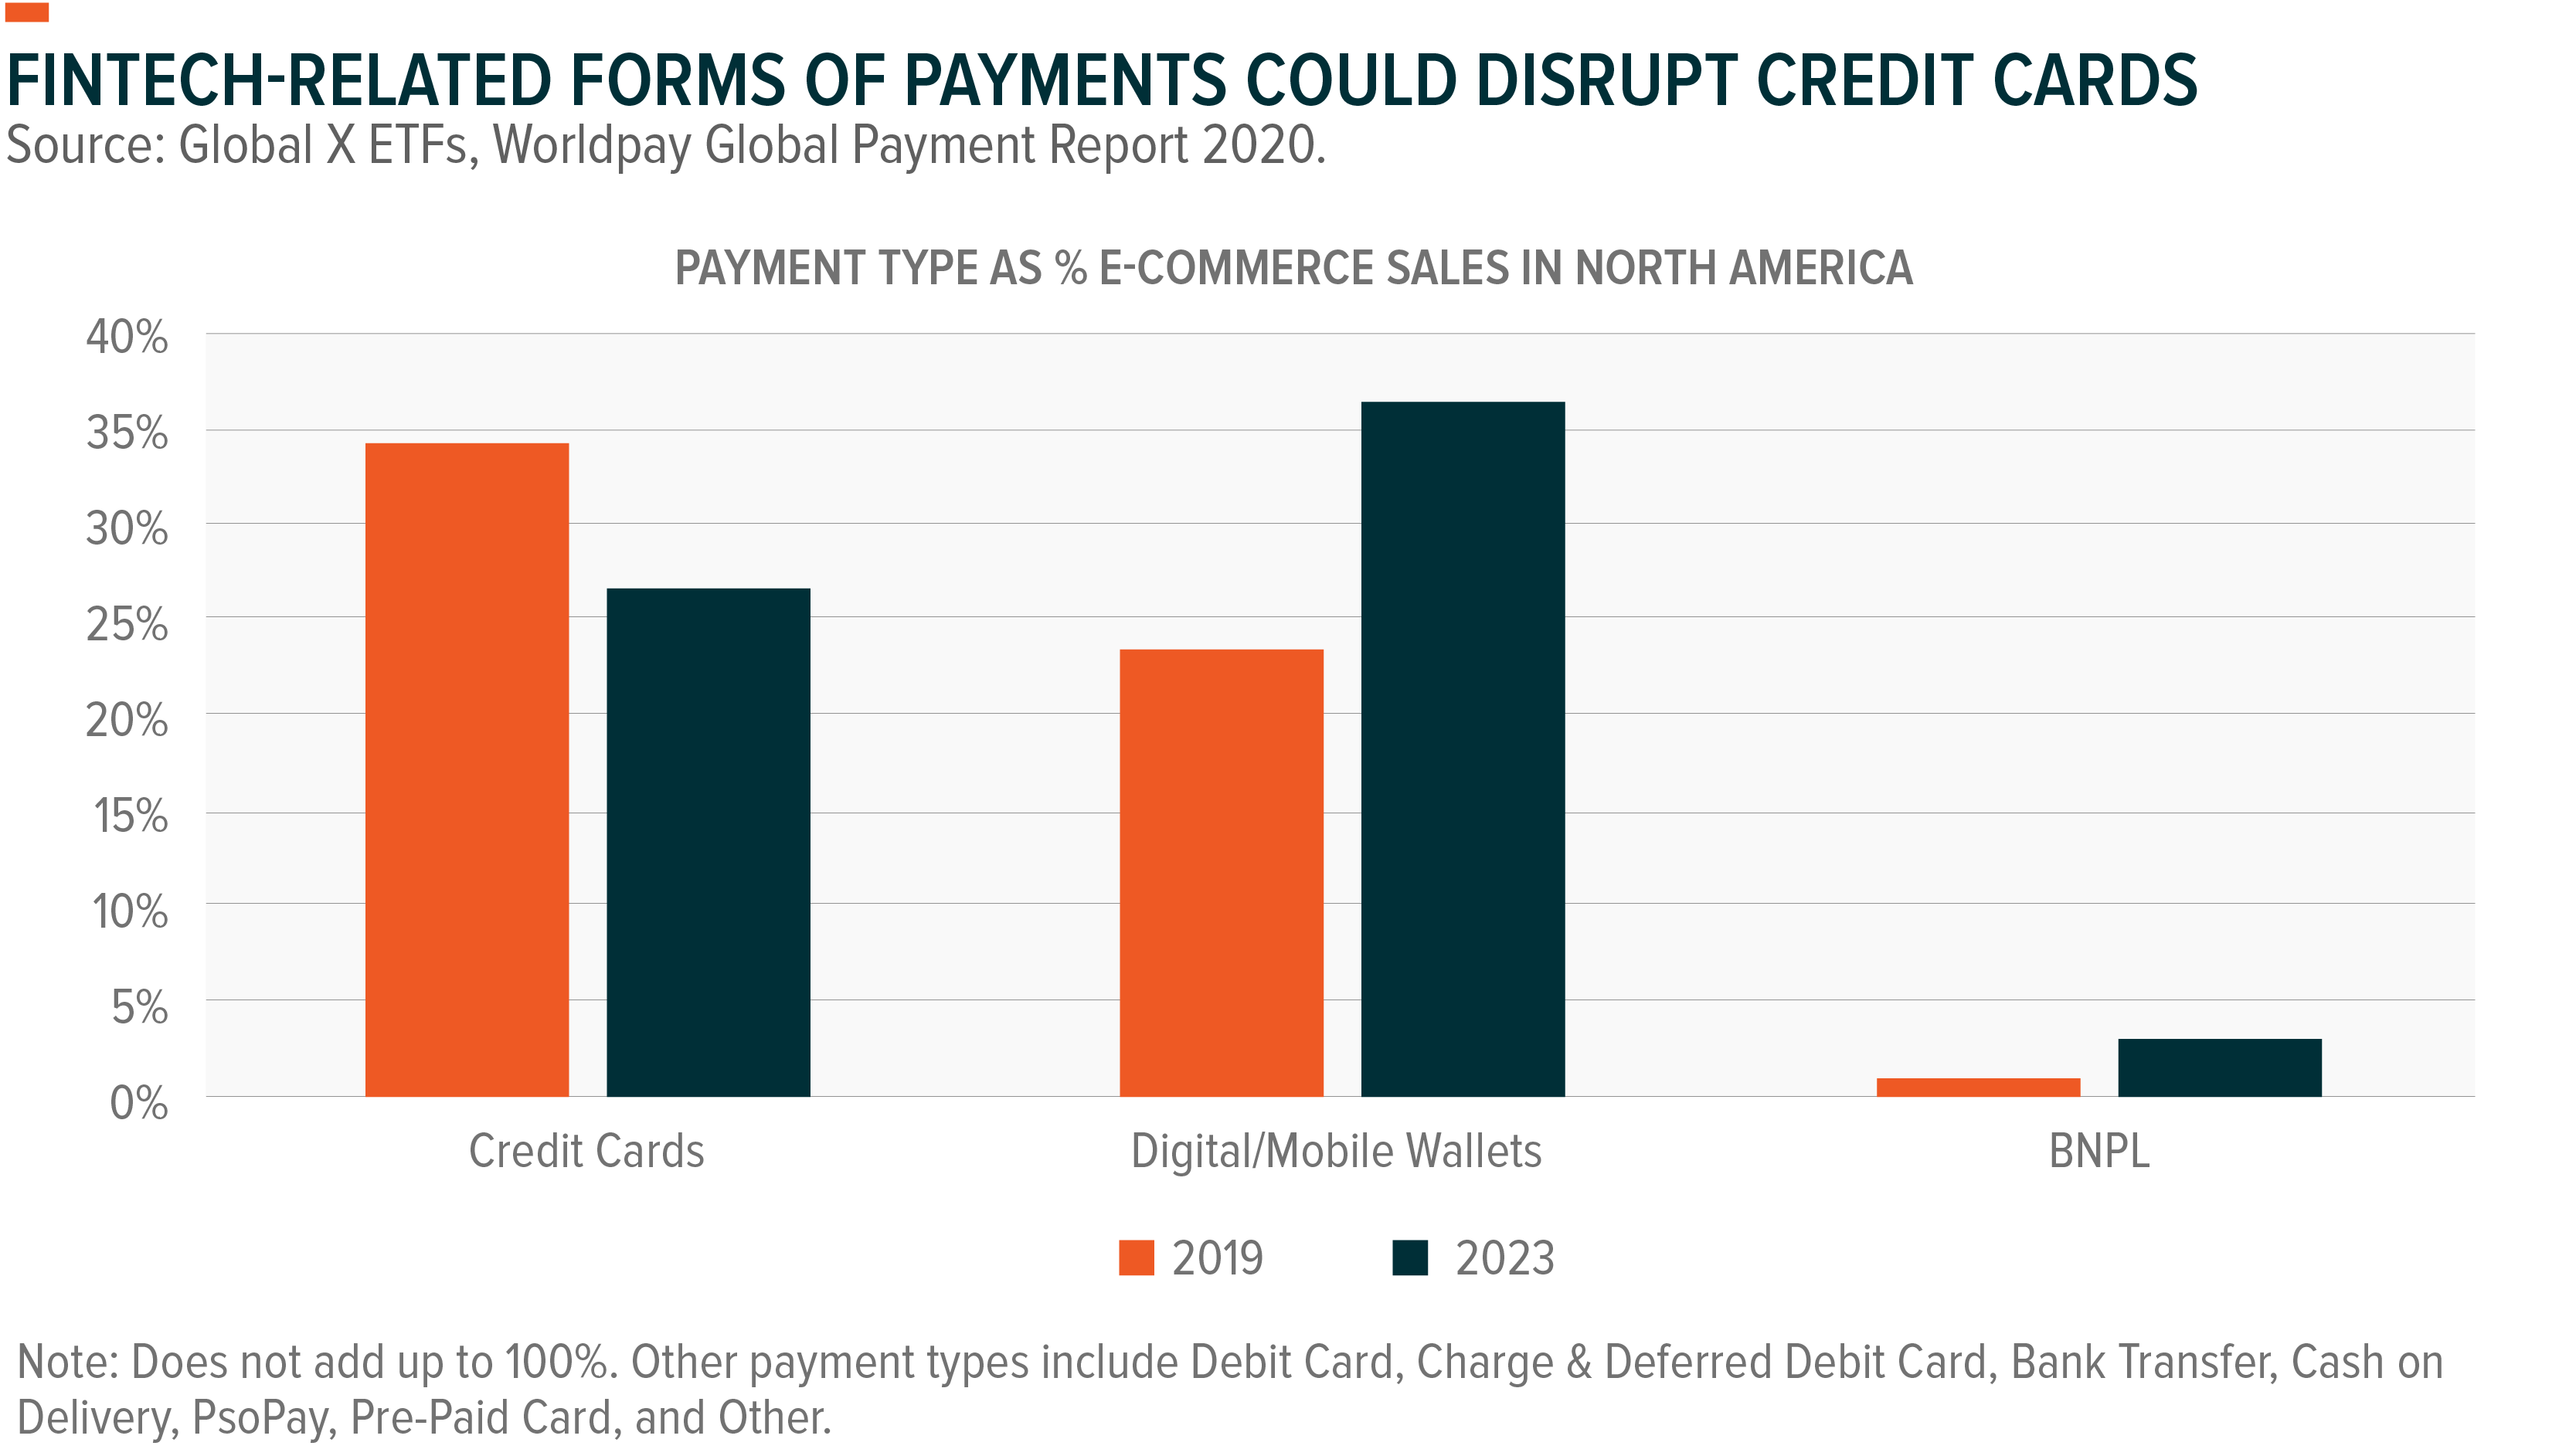 FinTech-Related Forms of Payments Could Disrupt Credit Cards